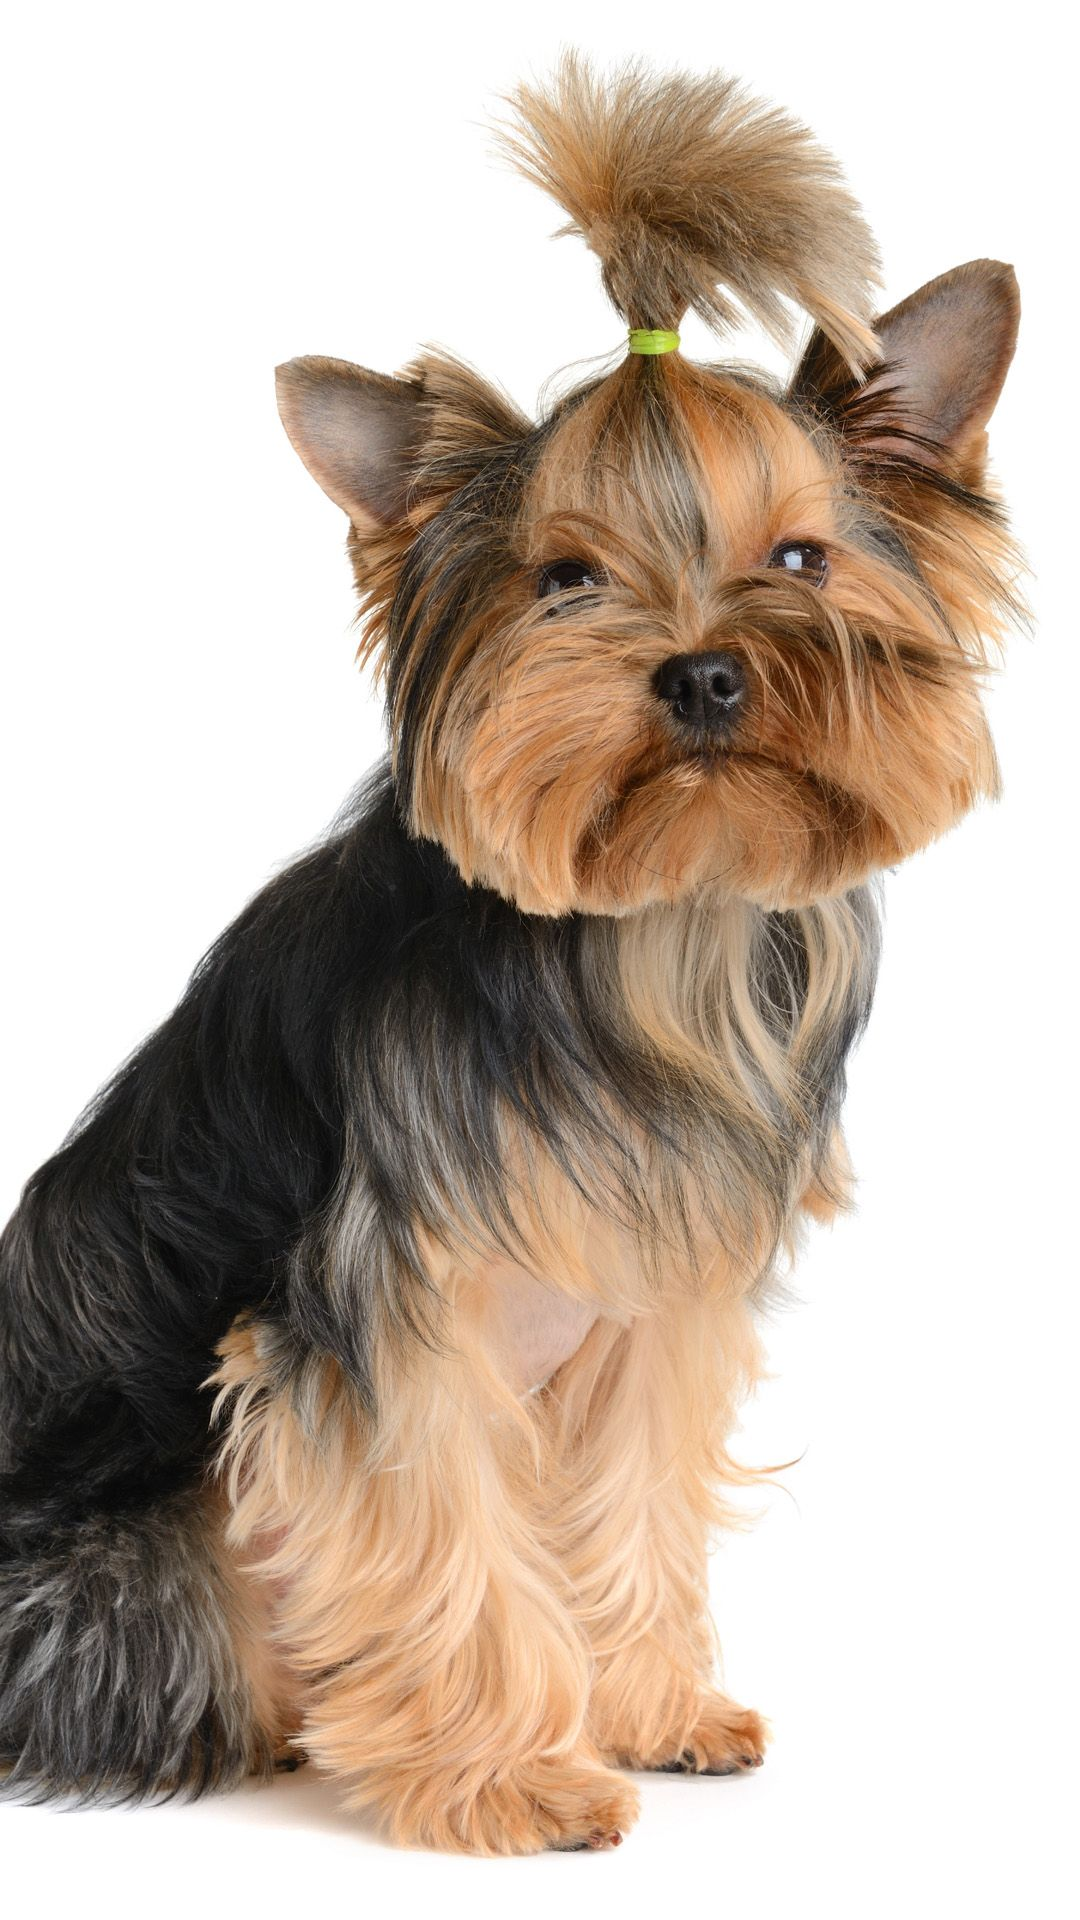 Cool Hairstyle Puppy Iphone 6 Wallpaper Download Iphone Wallpapers Ipad Wallpapers One Stop Download Puppies Yorkie Dogs Yorkie